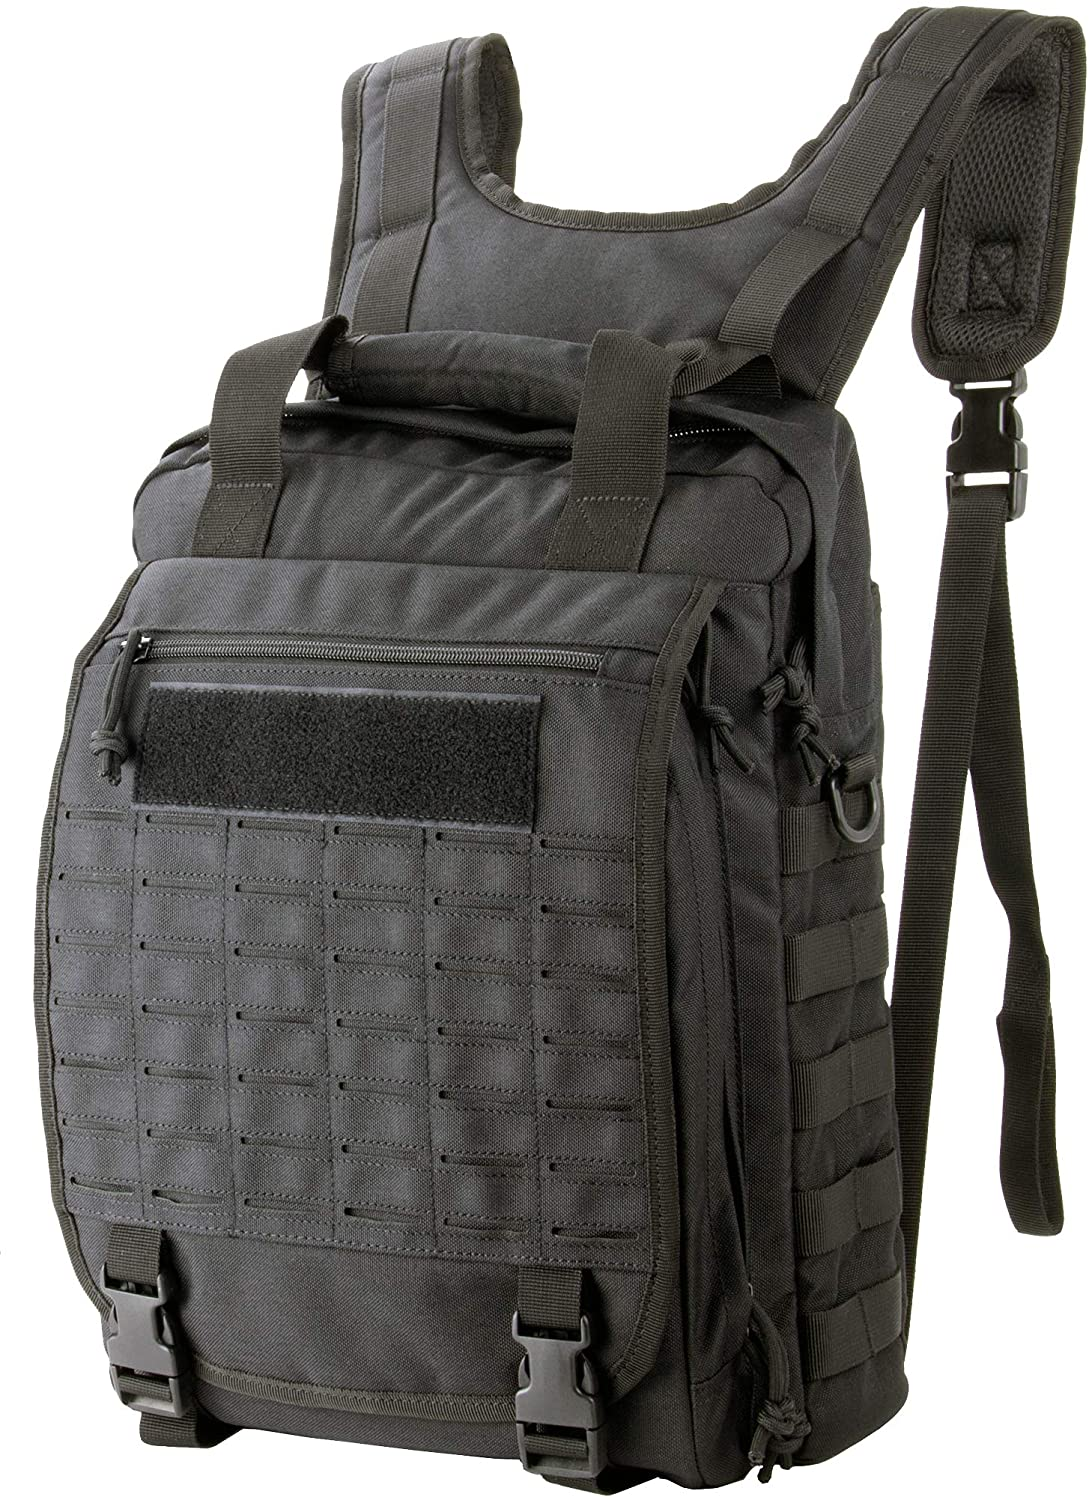 Military Laptop Backpack Army Messenger Bag Tactical Day Pack College School Backpack EDC Bag